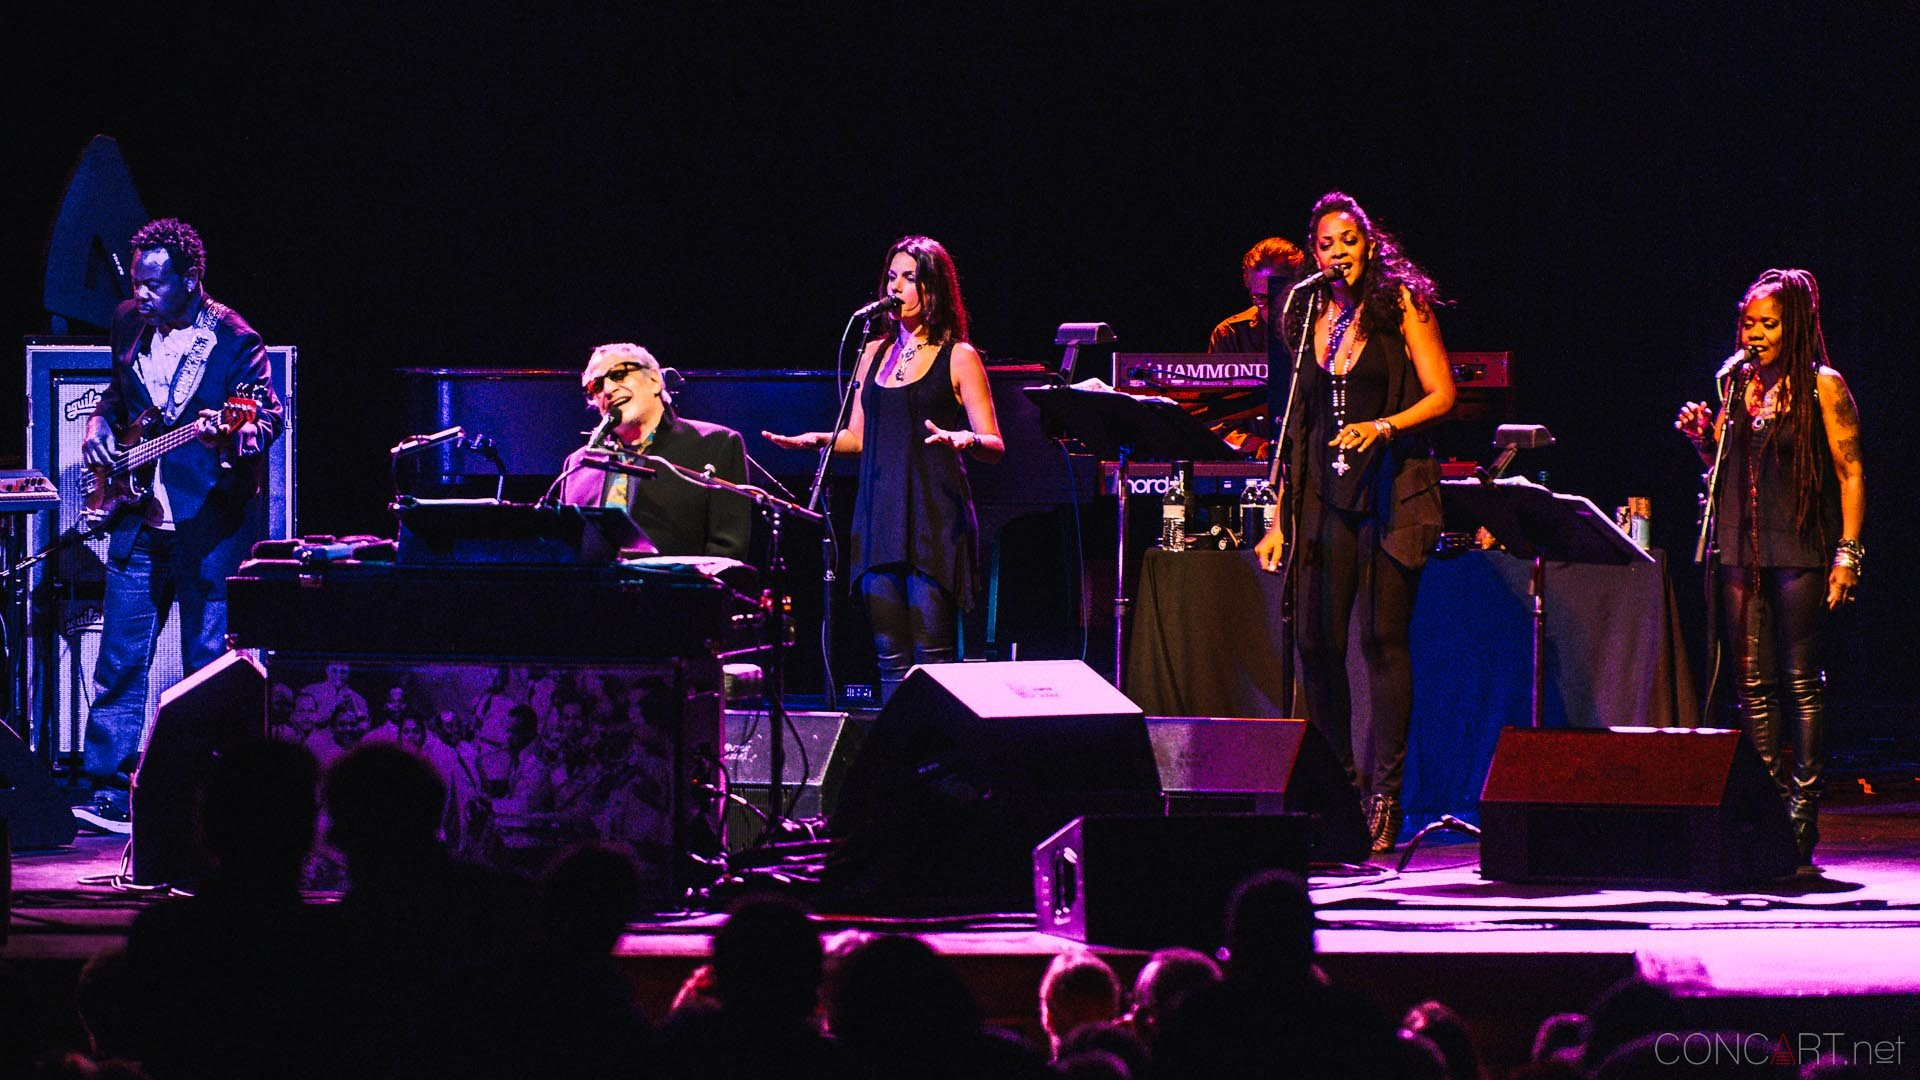 steely_dan_live_old_national_murat_theatre_indianapolis_2013-28